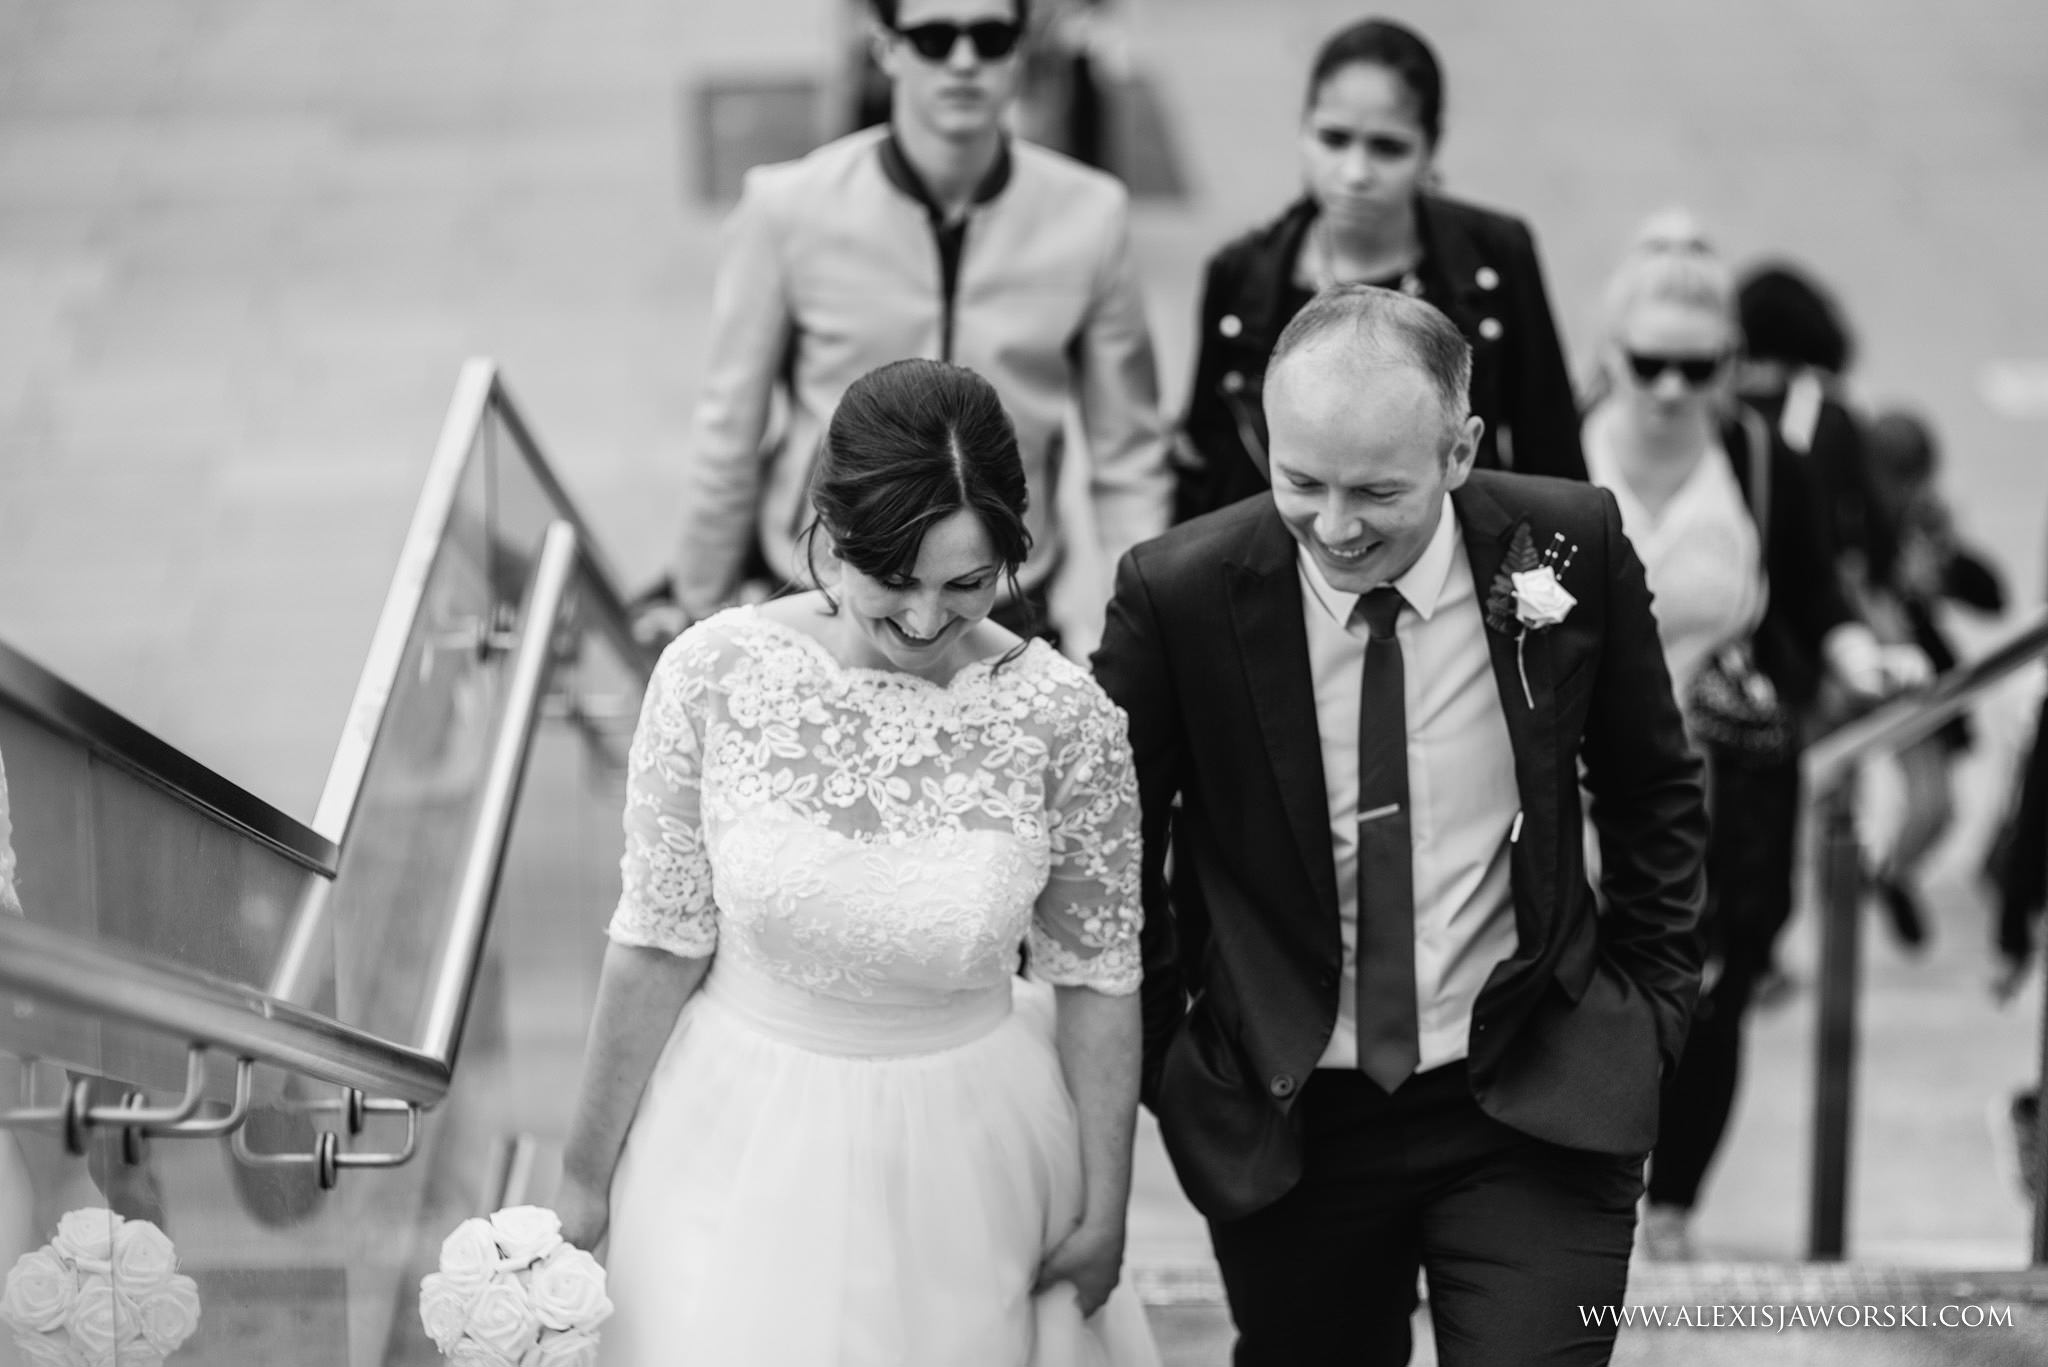 Bride and groom walking in London